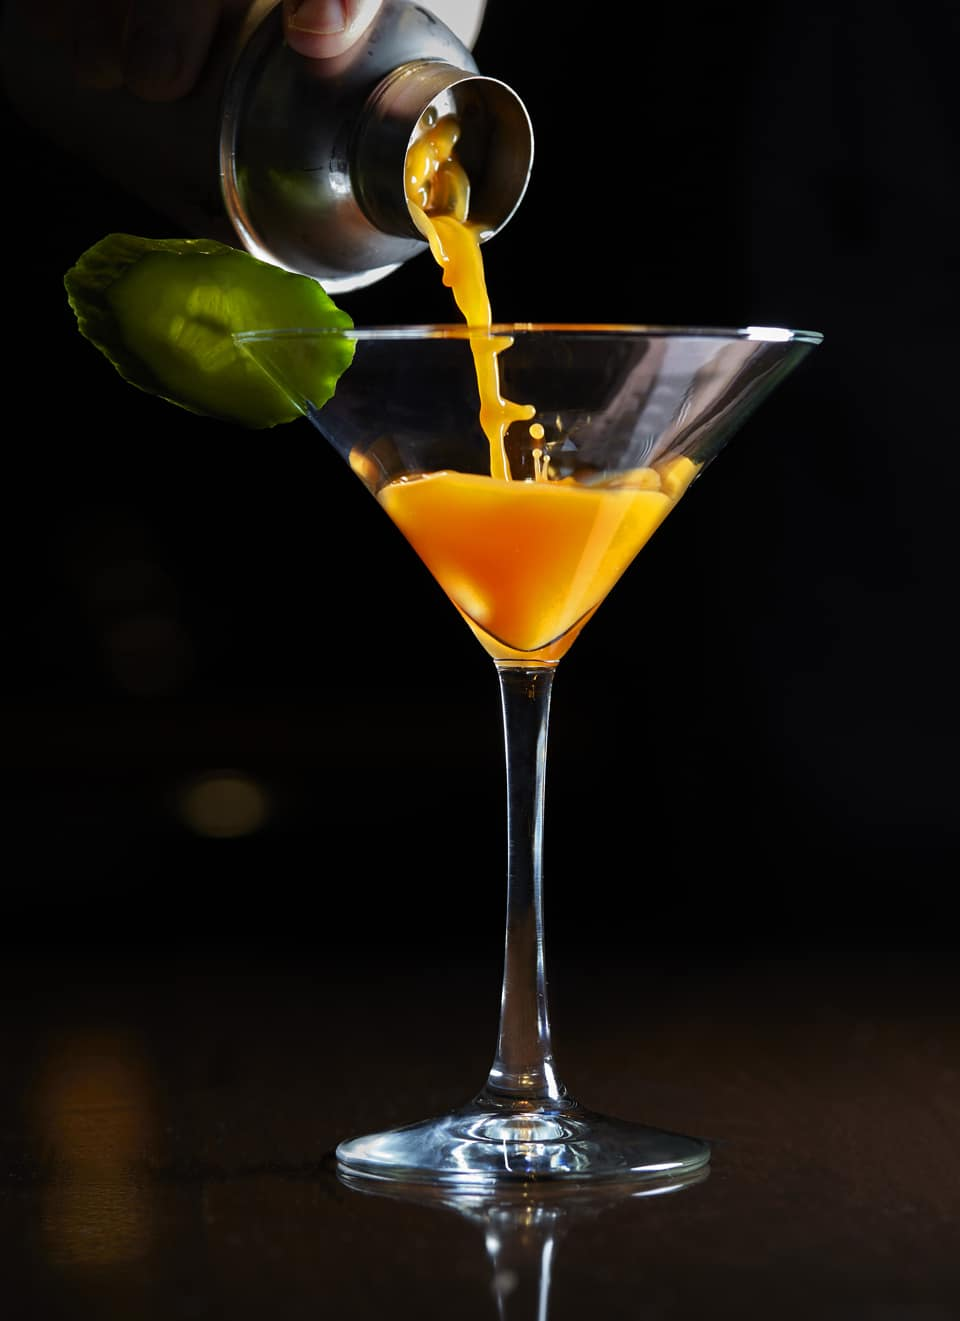 Carrot 43 Martini at The Winery Bar, The American Club, Kohler, Wisconsin, photo courtesy Kohler Co. FWT Magazine.